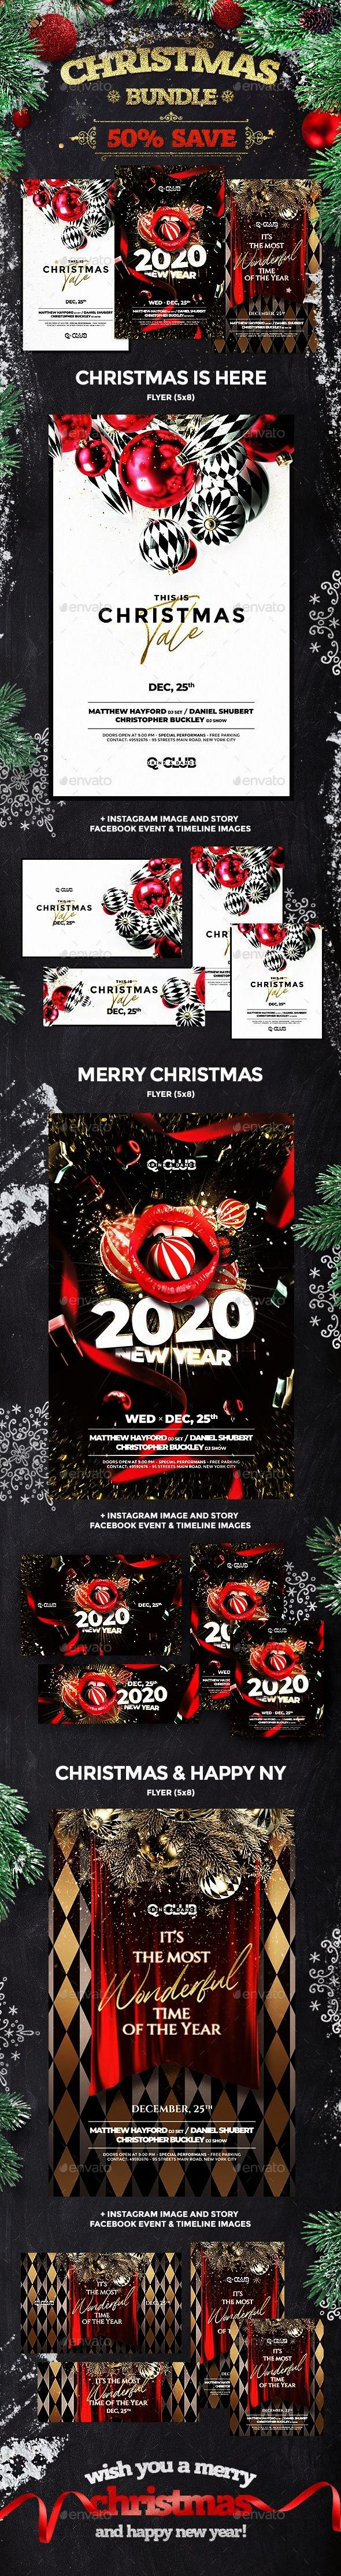 Flyer Collection Bundle Event flyer templateChristmas Flyer Collection Bundle Event flyer template New Year Eve Flyer Template Get it now Beat Eve Mix Night Club Flyer Ch...